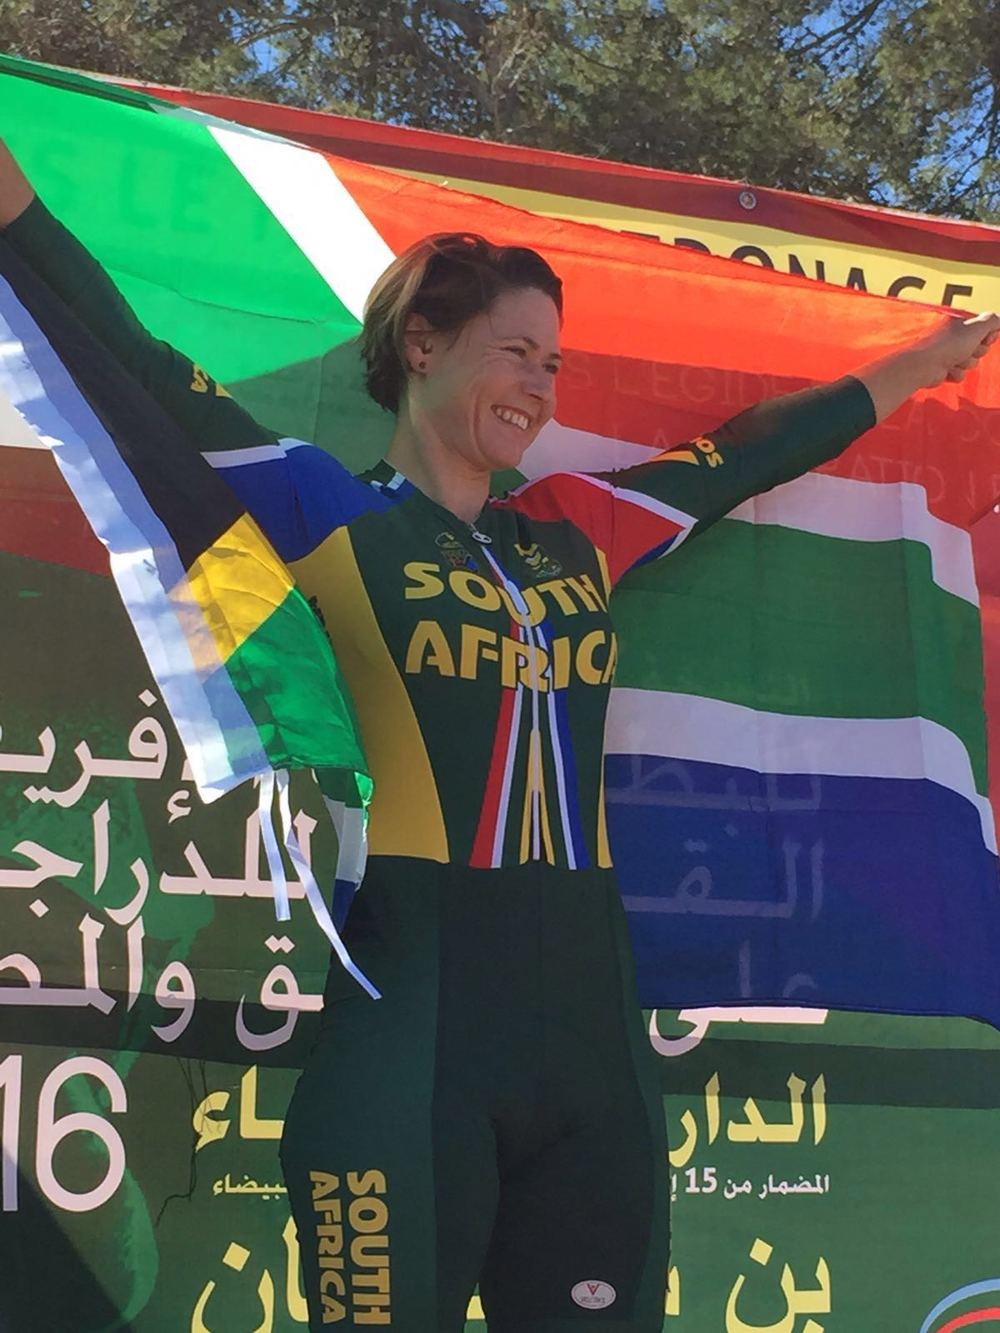 Samantha Sanders (33) claimed a bronze medal in the Individual Time Trial at the 2016 CAC (African Cycling Confederation) Road Cycling Championships in Benslimane, Morocco, on Tuesday 23 February.